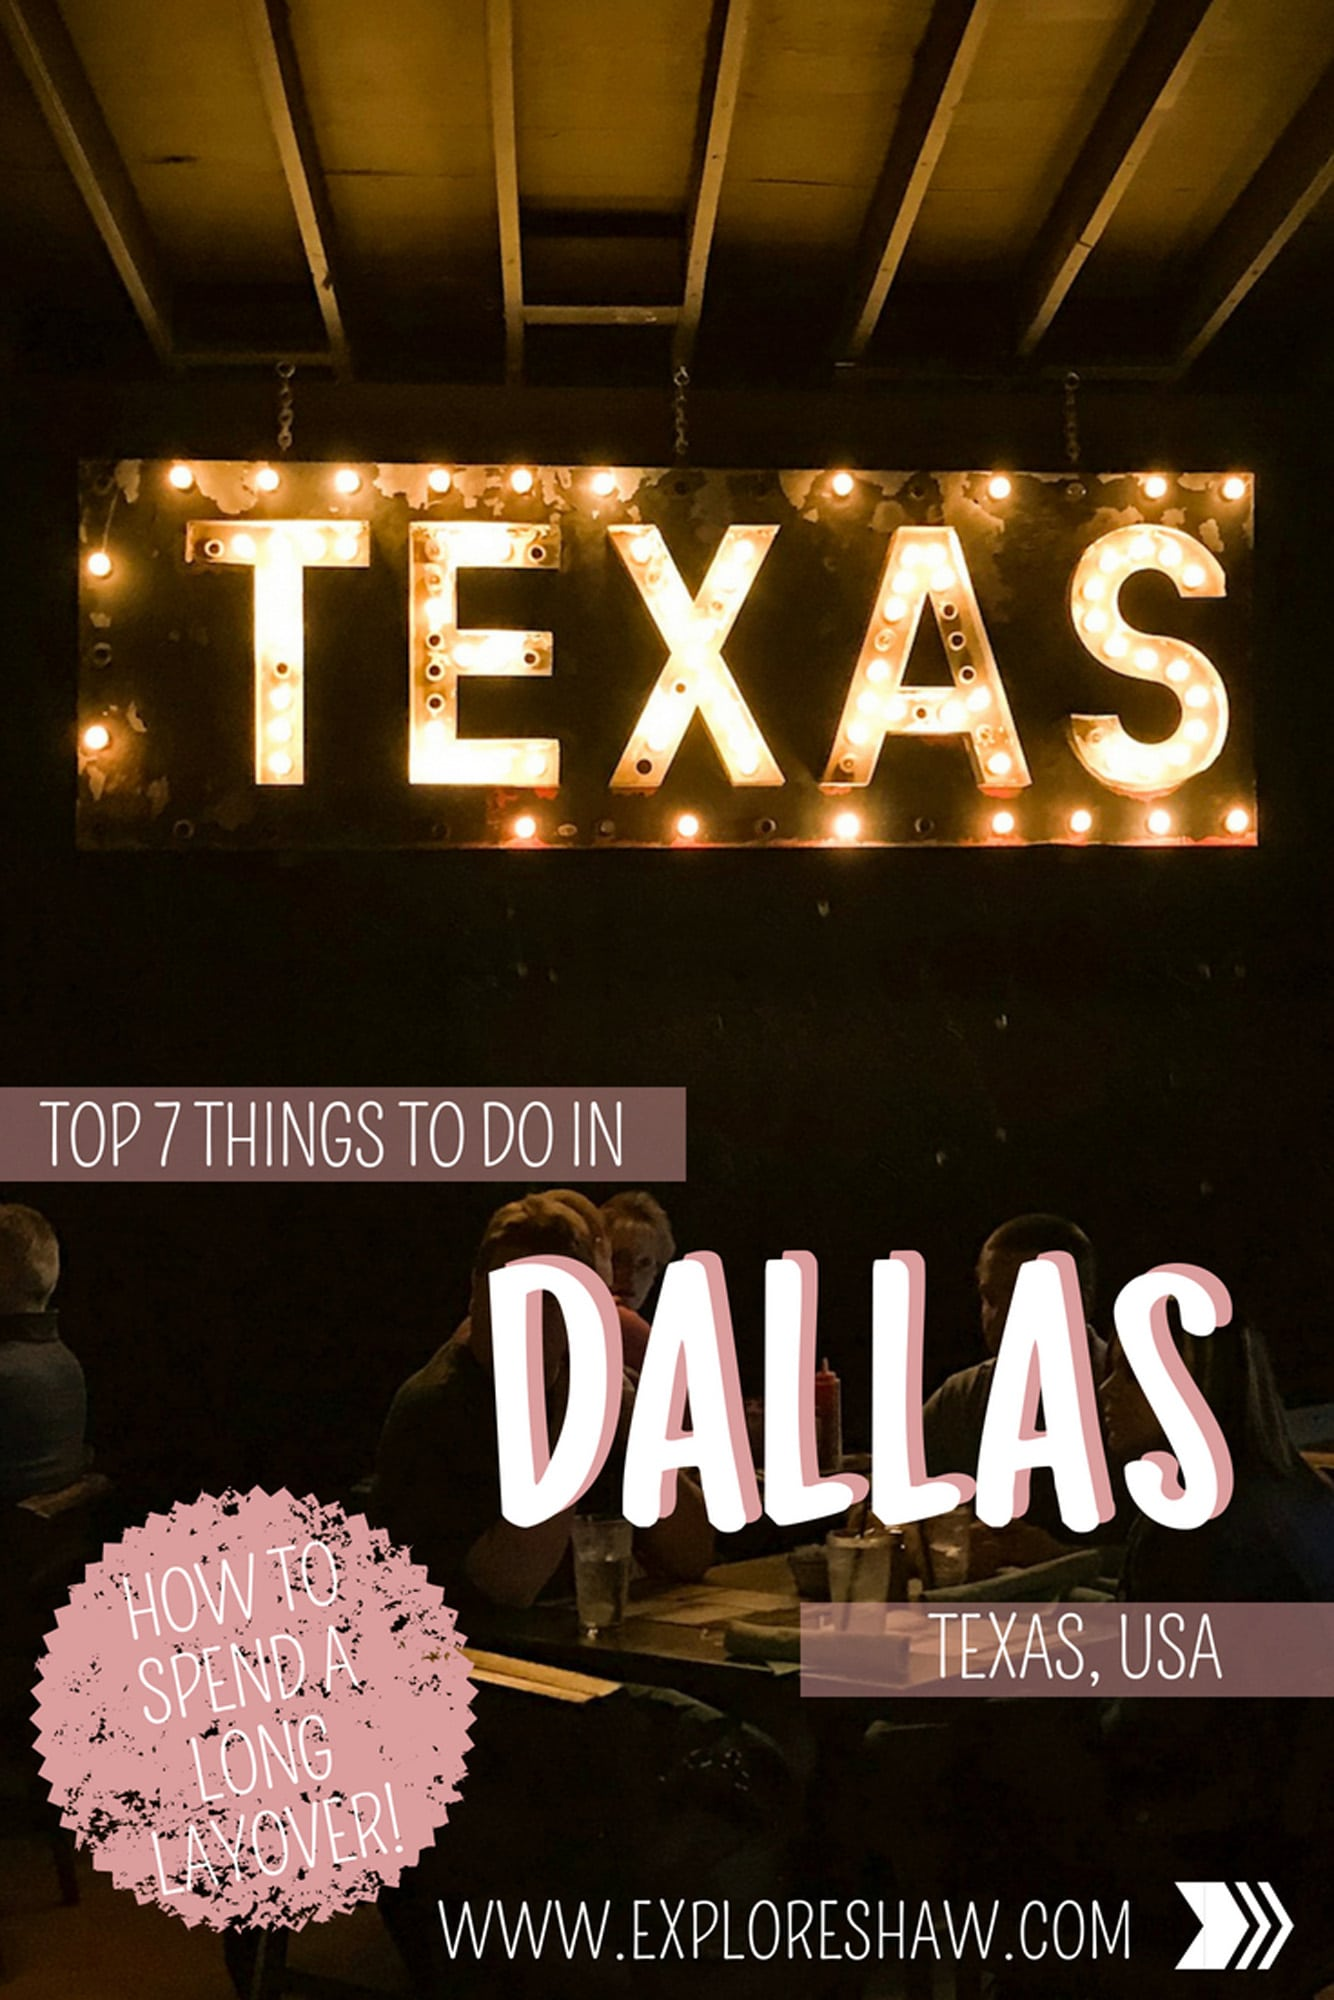 TOP 7 THINGS TO DO IN DALLAS